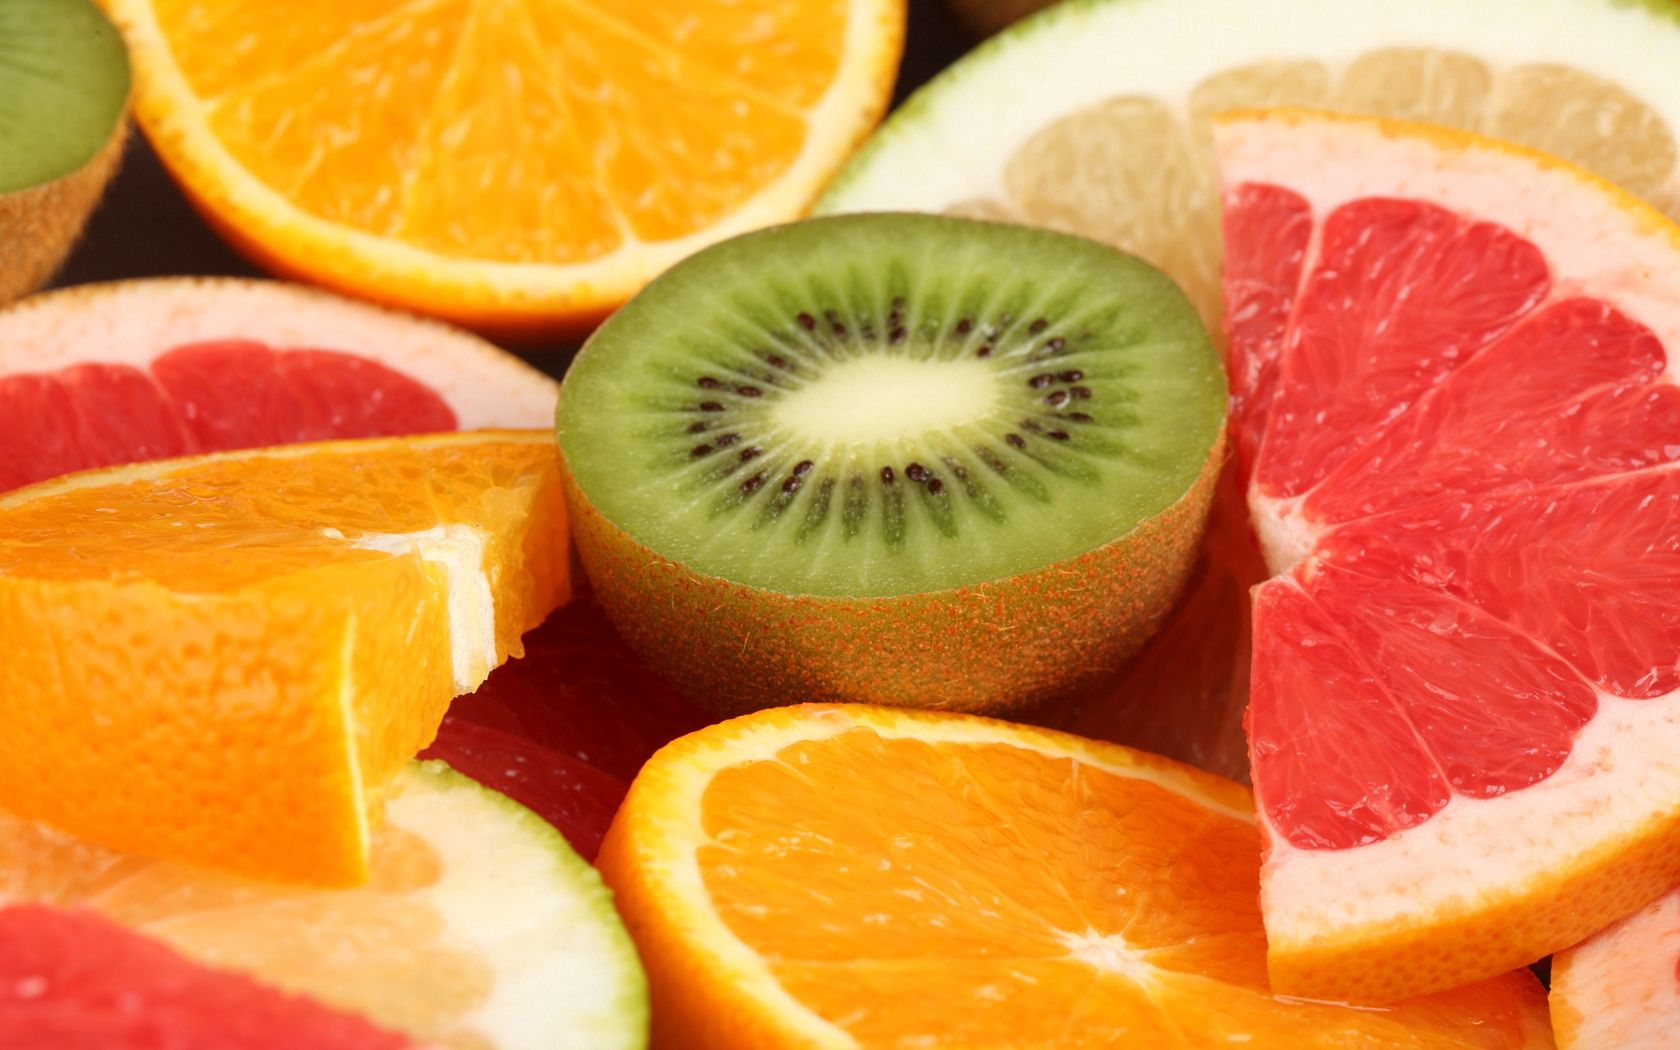 111939 download wallpaper Fruits, Food, Oranges, Kiwi, Lime, Grapefruit screensavers and pictures for free